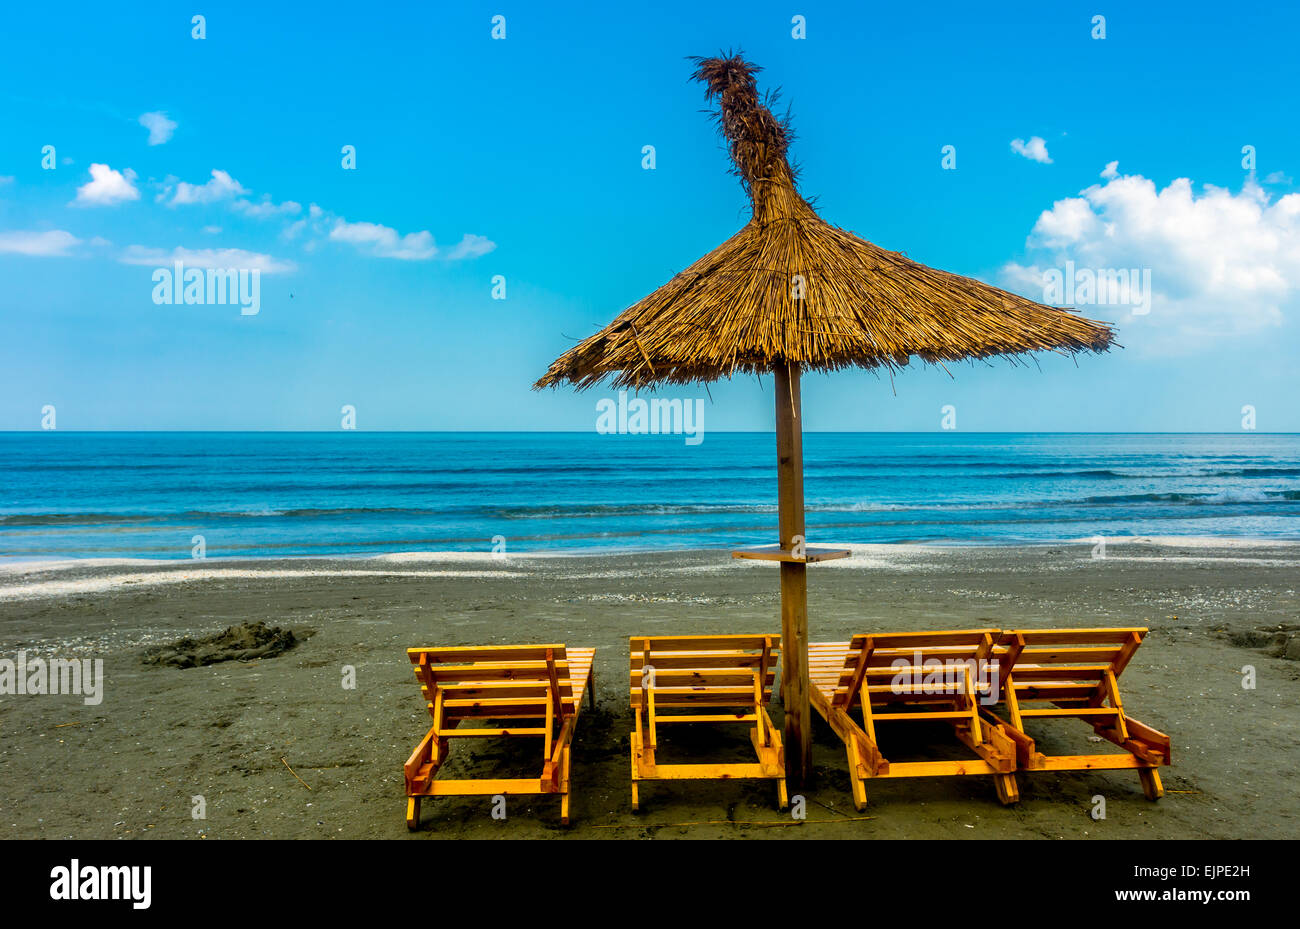 Seaside beach with lounge chairs and straw umbrella. - Stock Image